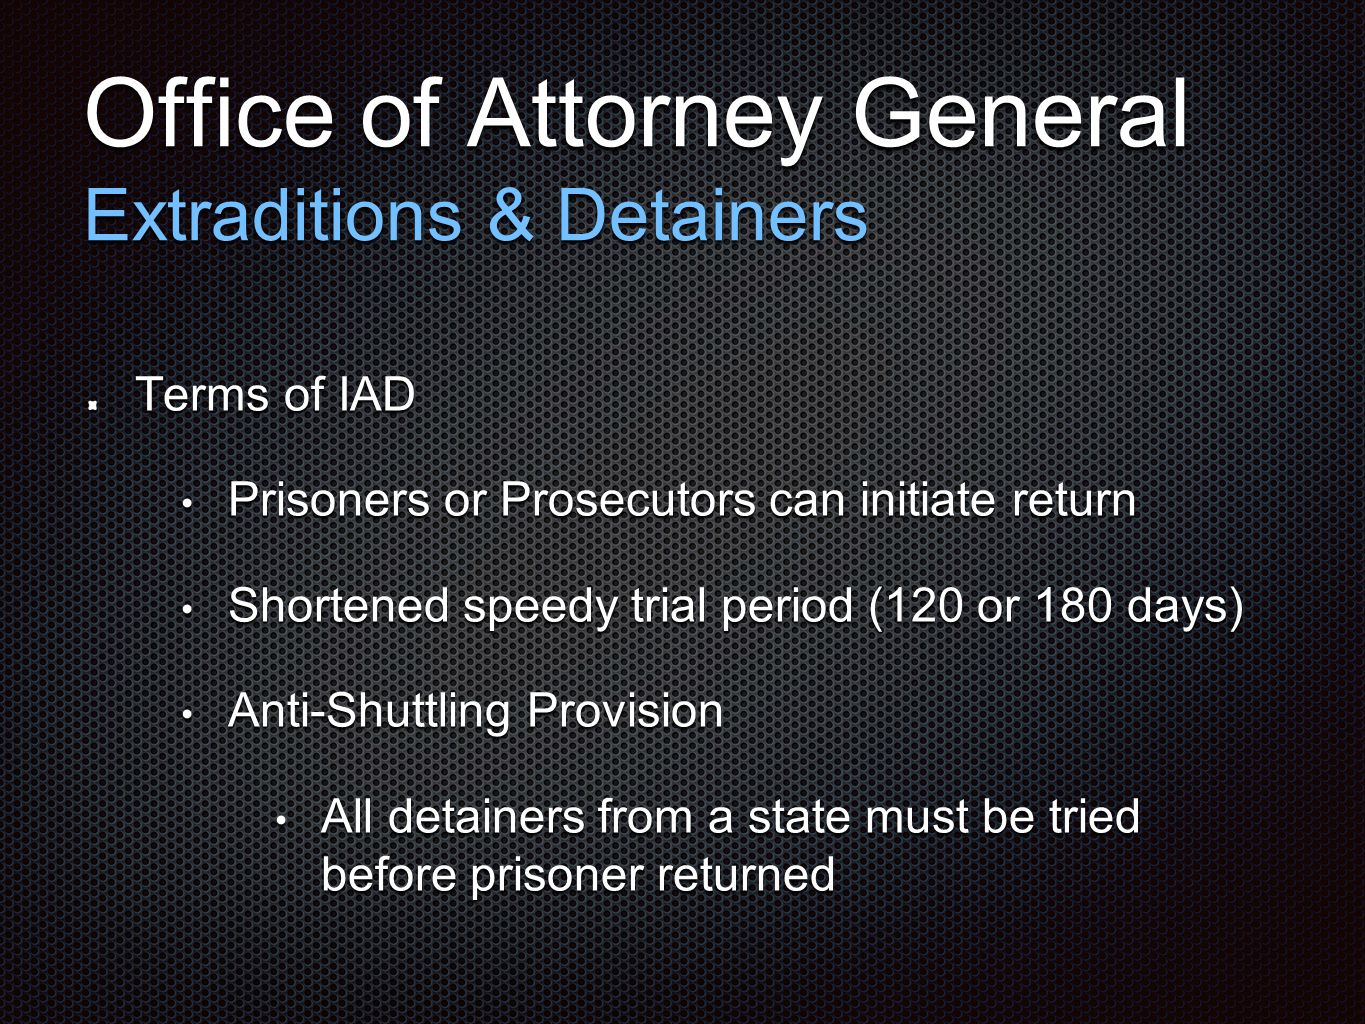 Office of Attorney General Extraditions & Detainers Terms of IAD Prisoners or Prosecutors can initiate return Prisoners or Prosecutors can initiate re